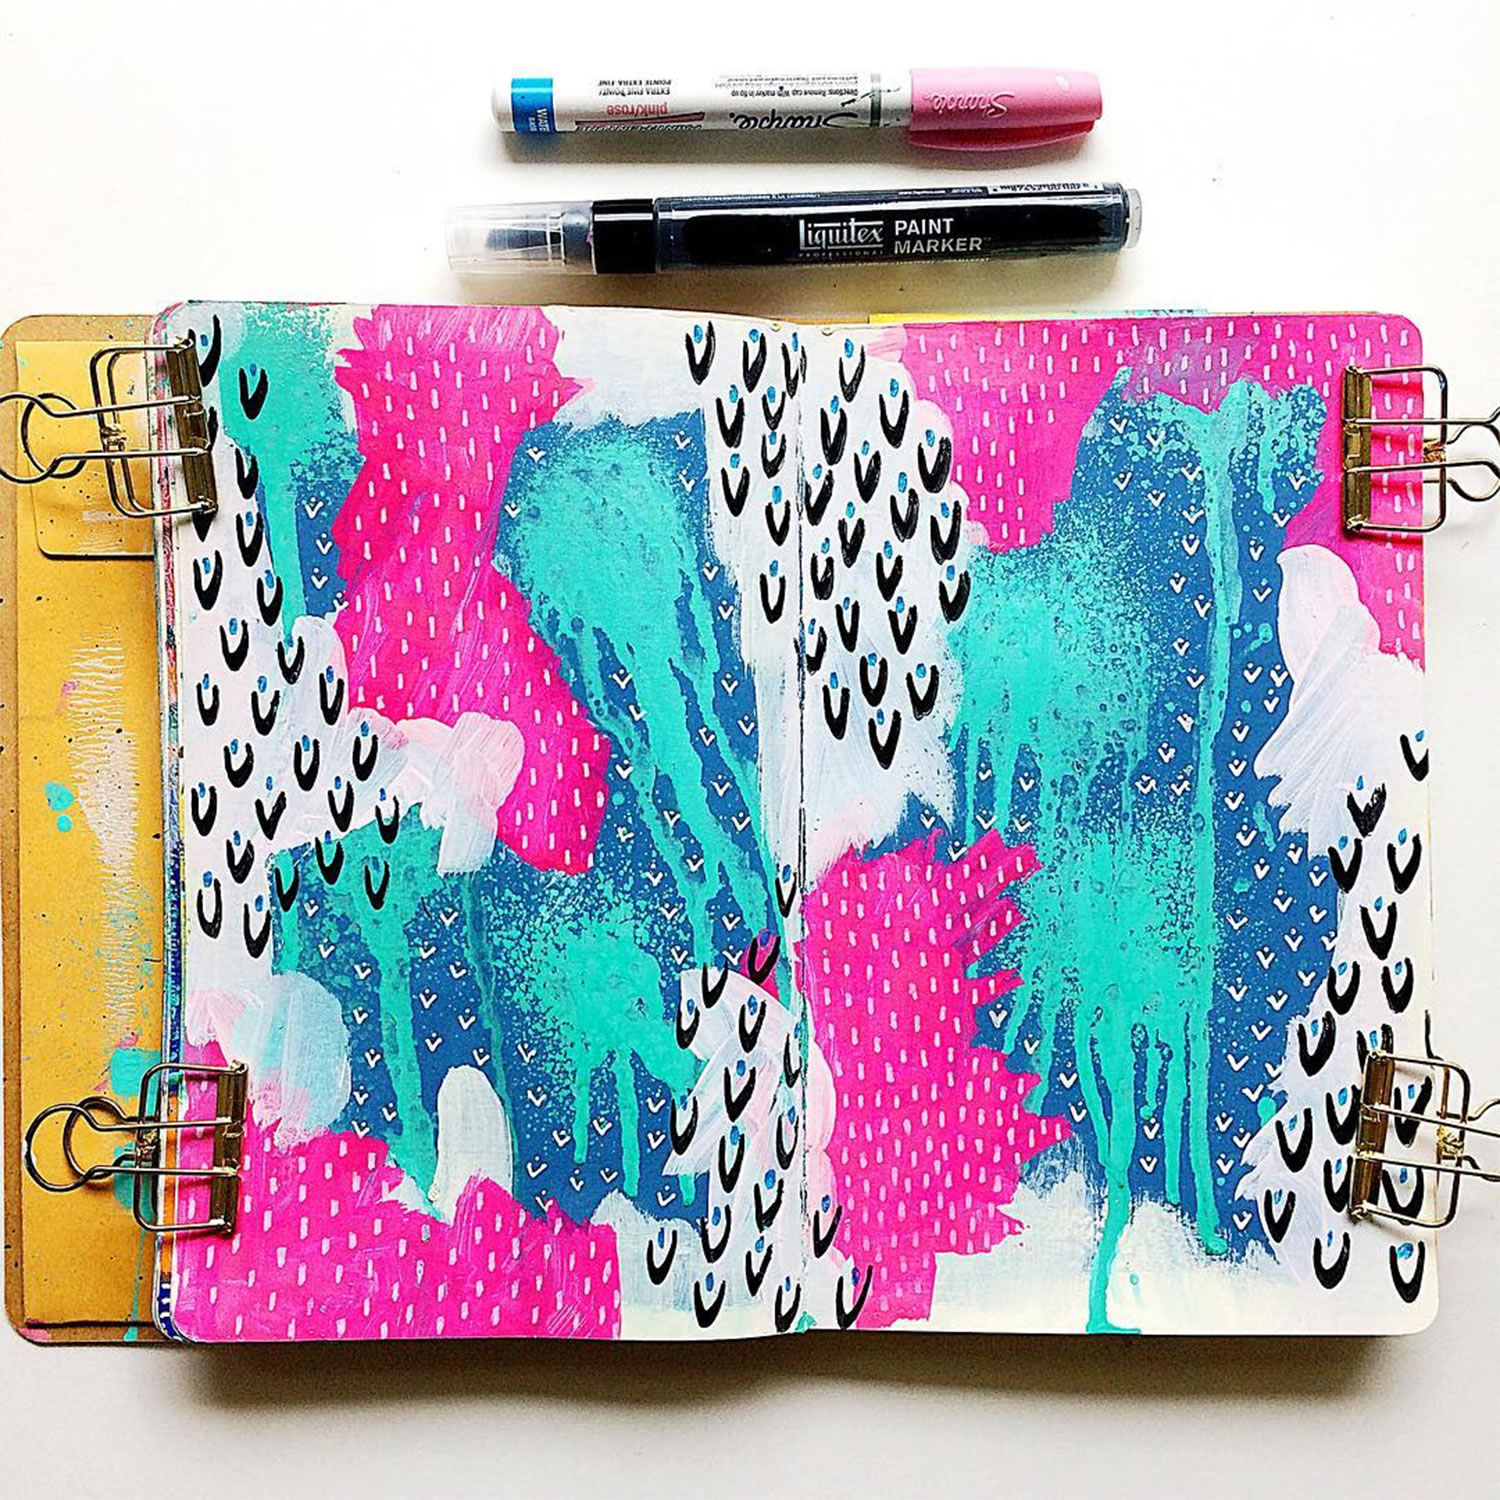 colorful sketchbook art by Samantha Russo